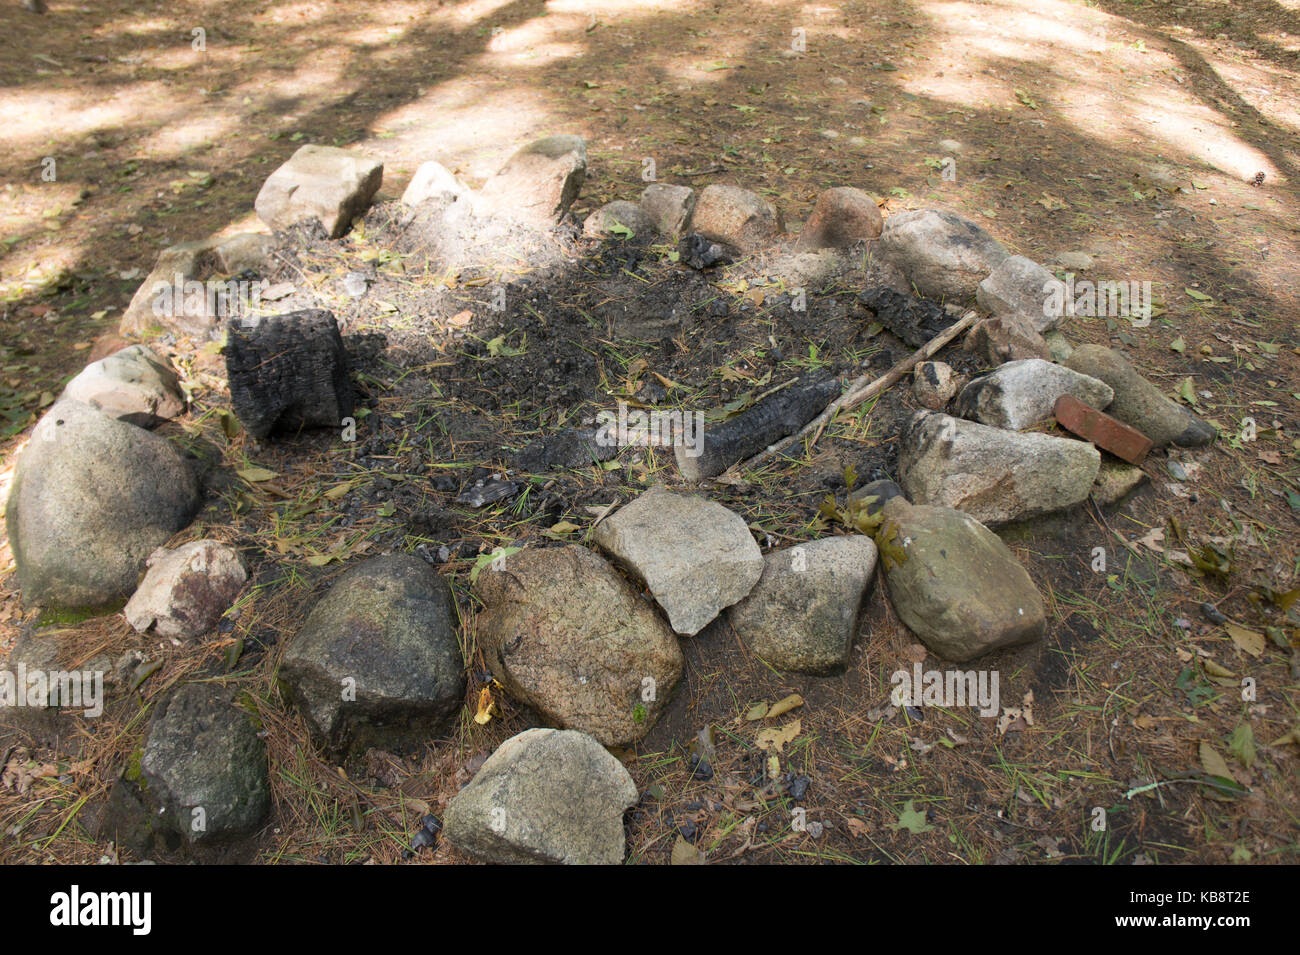 Abandoned Fire pit, Camping site - Stock Image